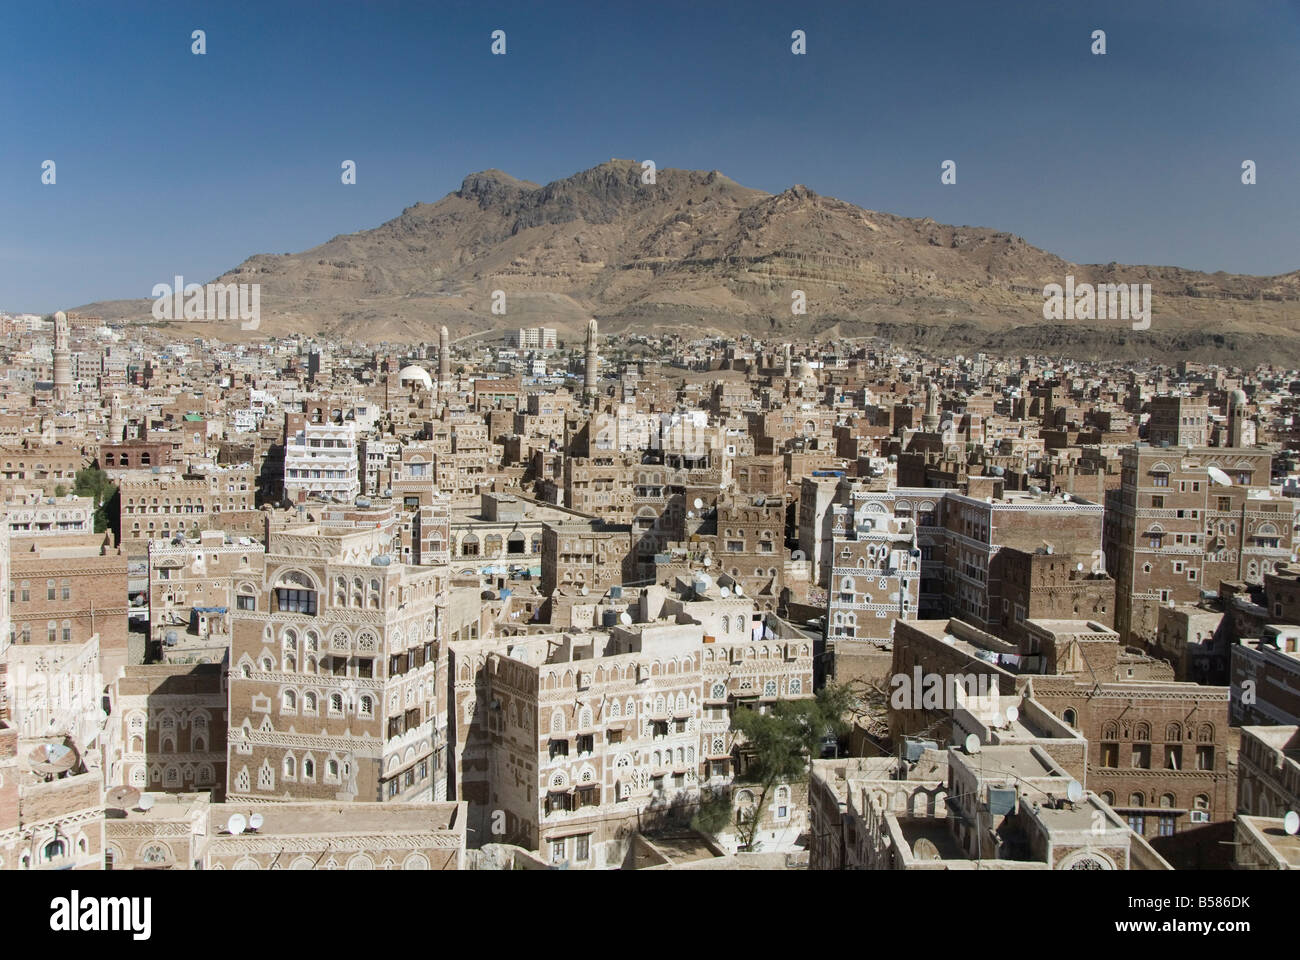 View across Old City of traditional tall brick-built houses, Sana'a, UNESCO World Heritage Site, Yemen, Middle - Stock Image